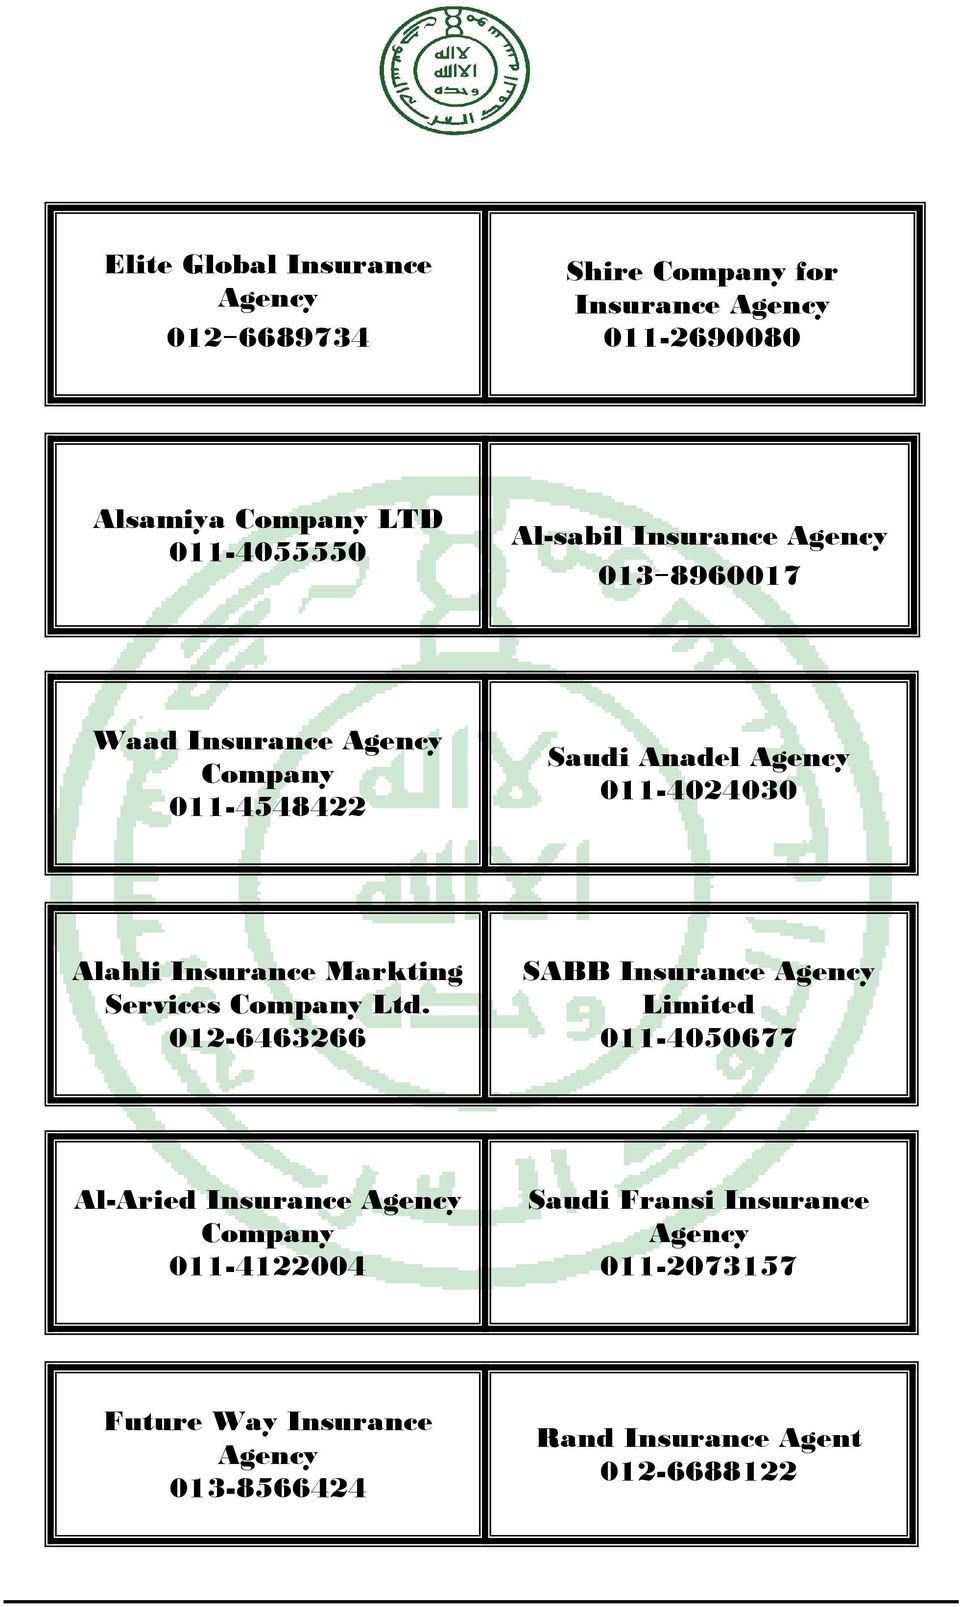 Insurance Markting Services Ltd.